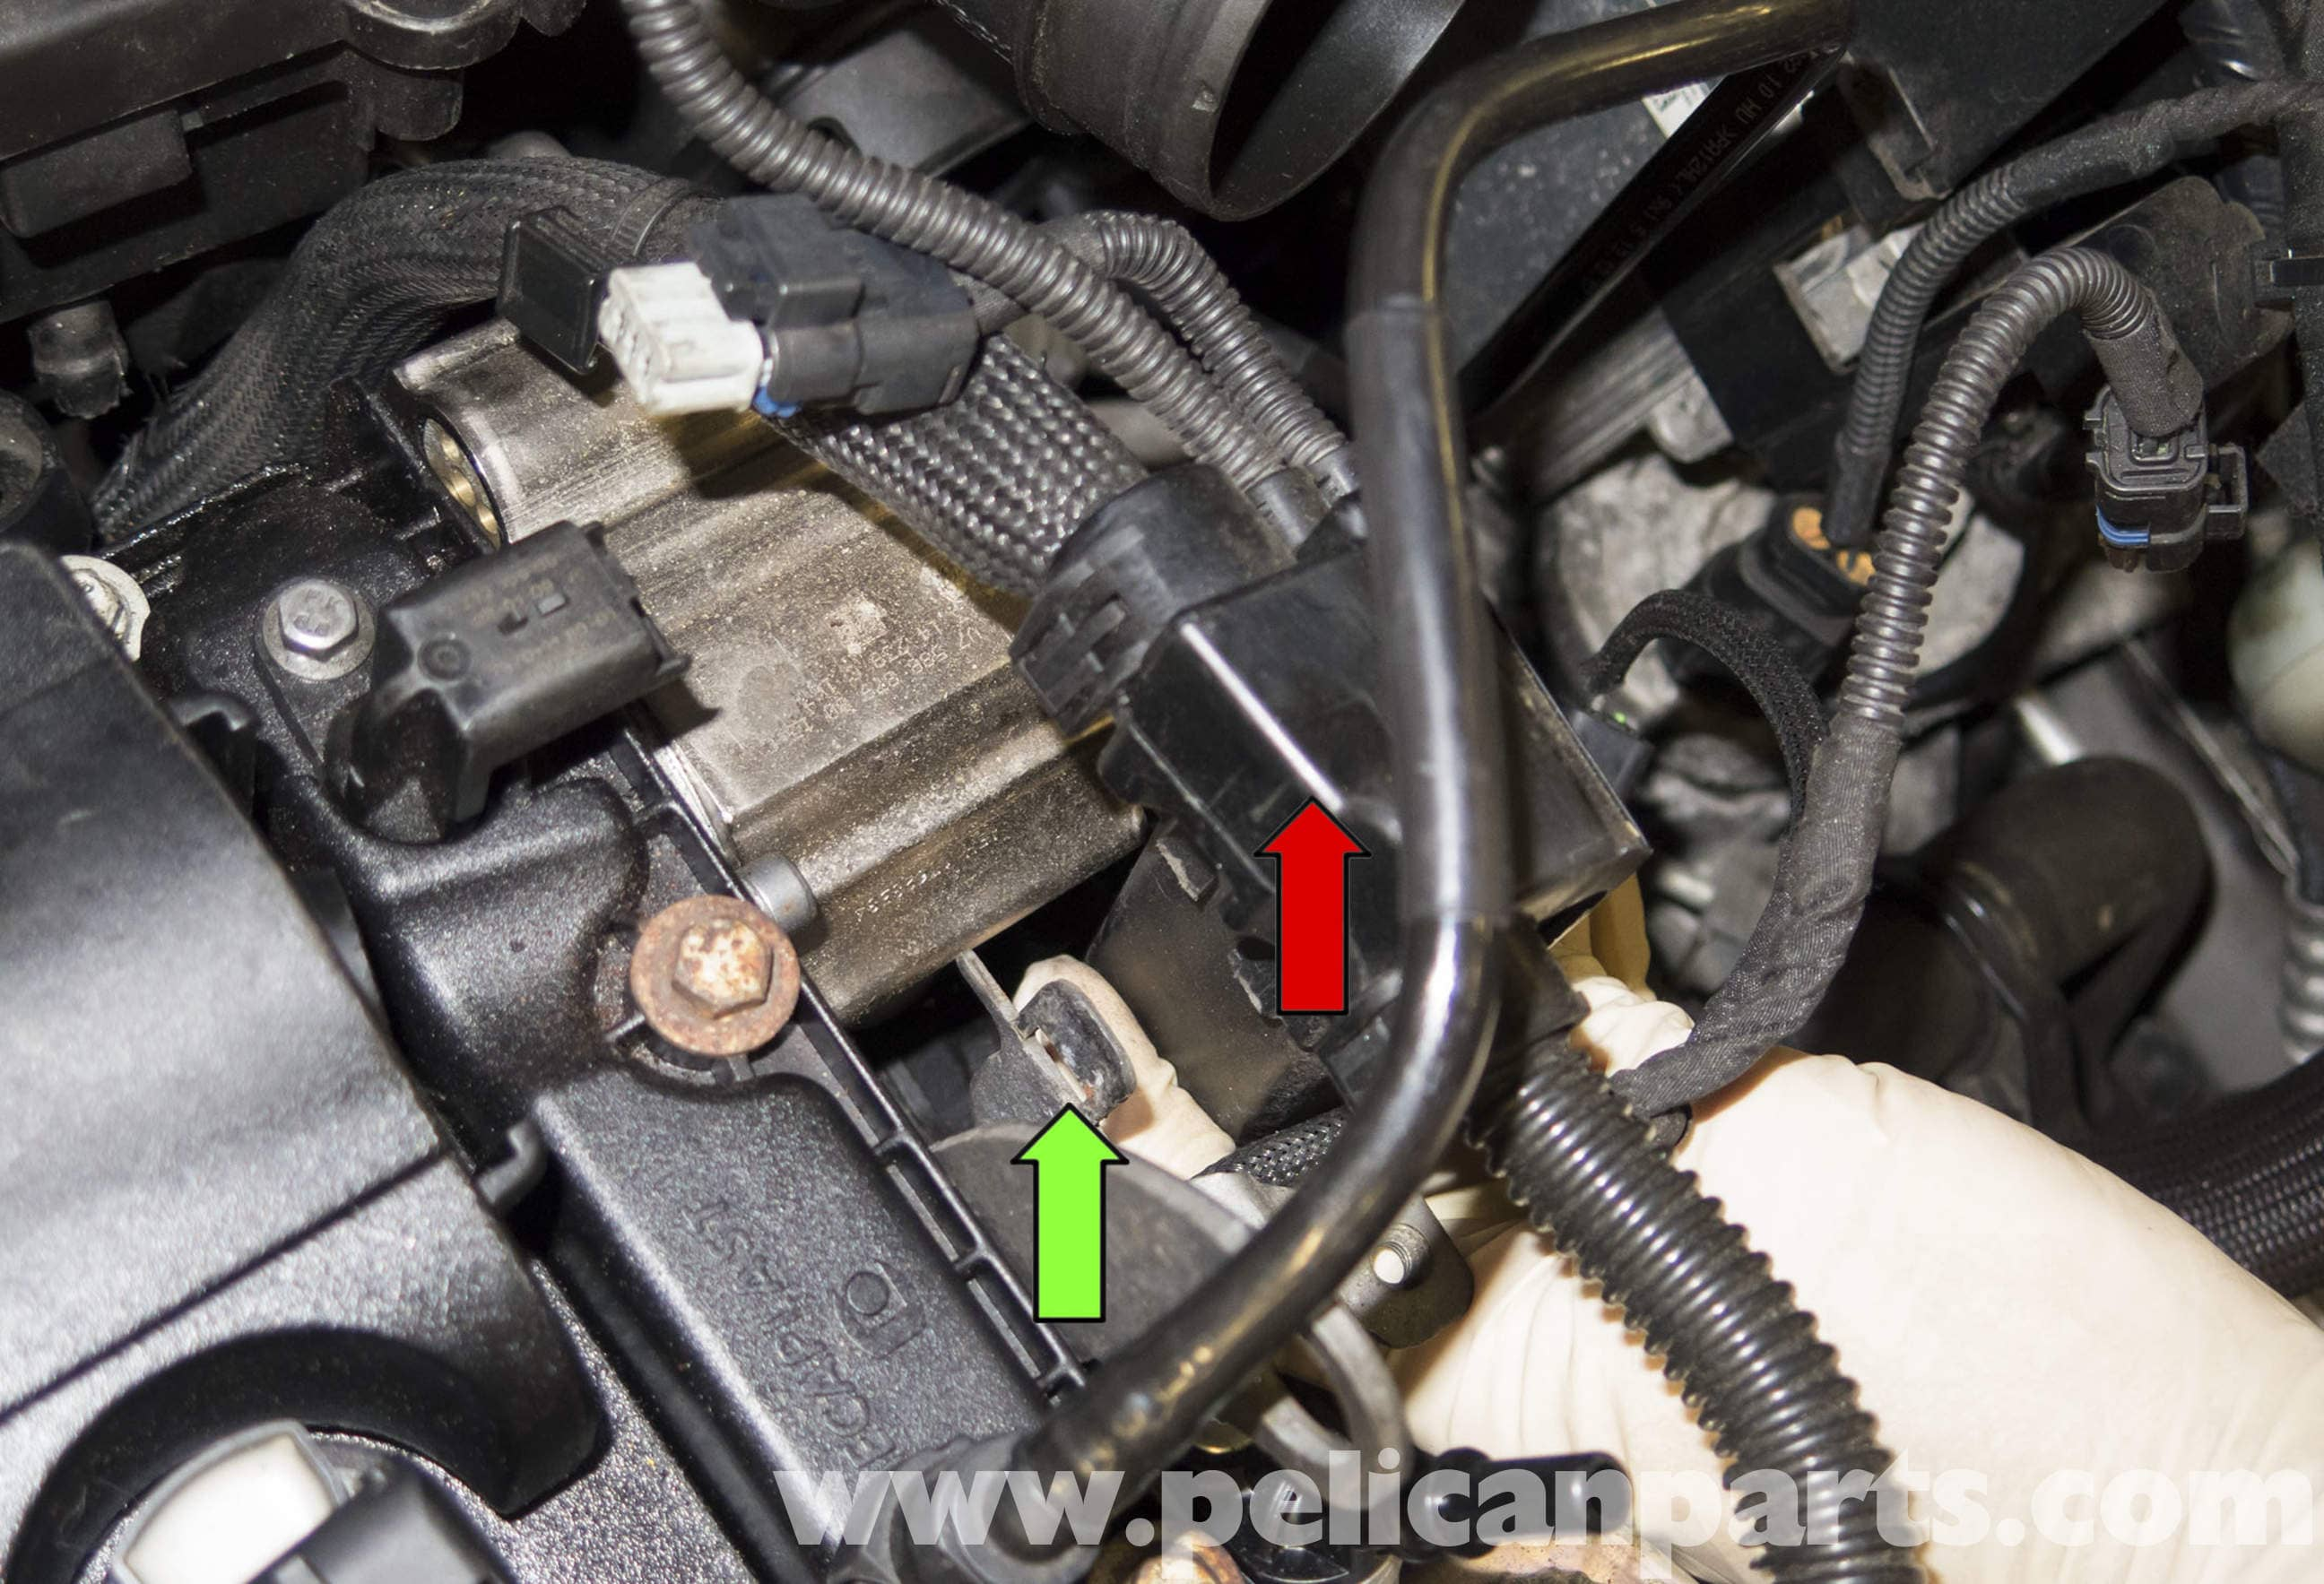 300zx Coolant System Diagram Electrical Wiring Mini Cooper Engine Cooling Radiator Level Spark Plugs Bontivelle Diesel